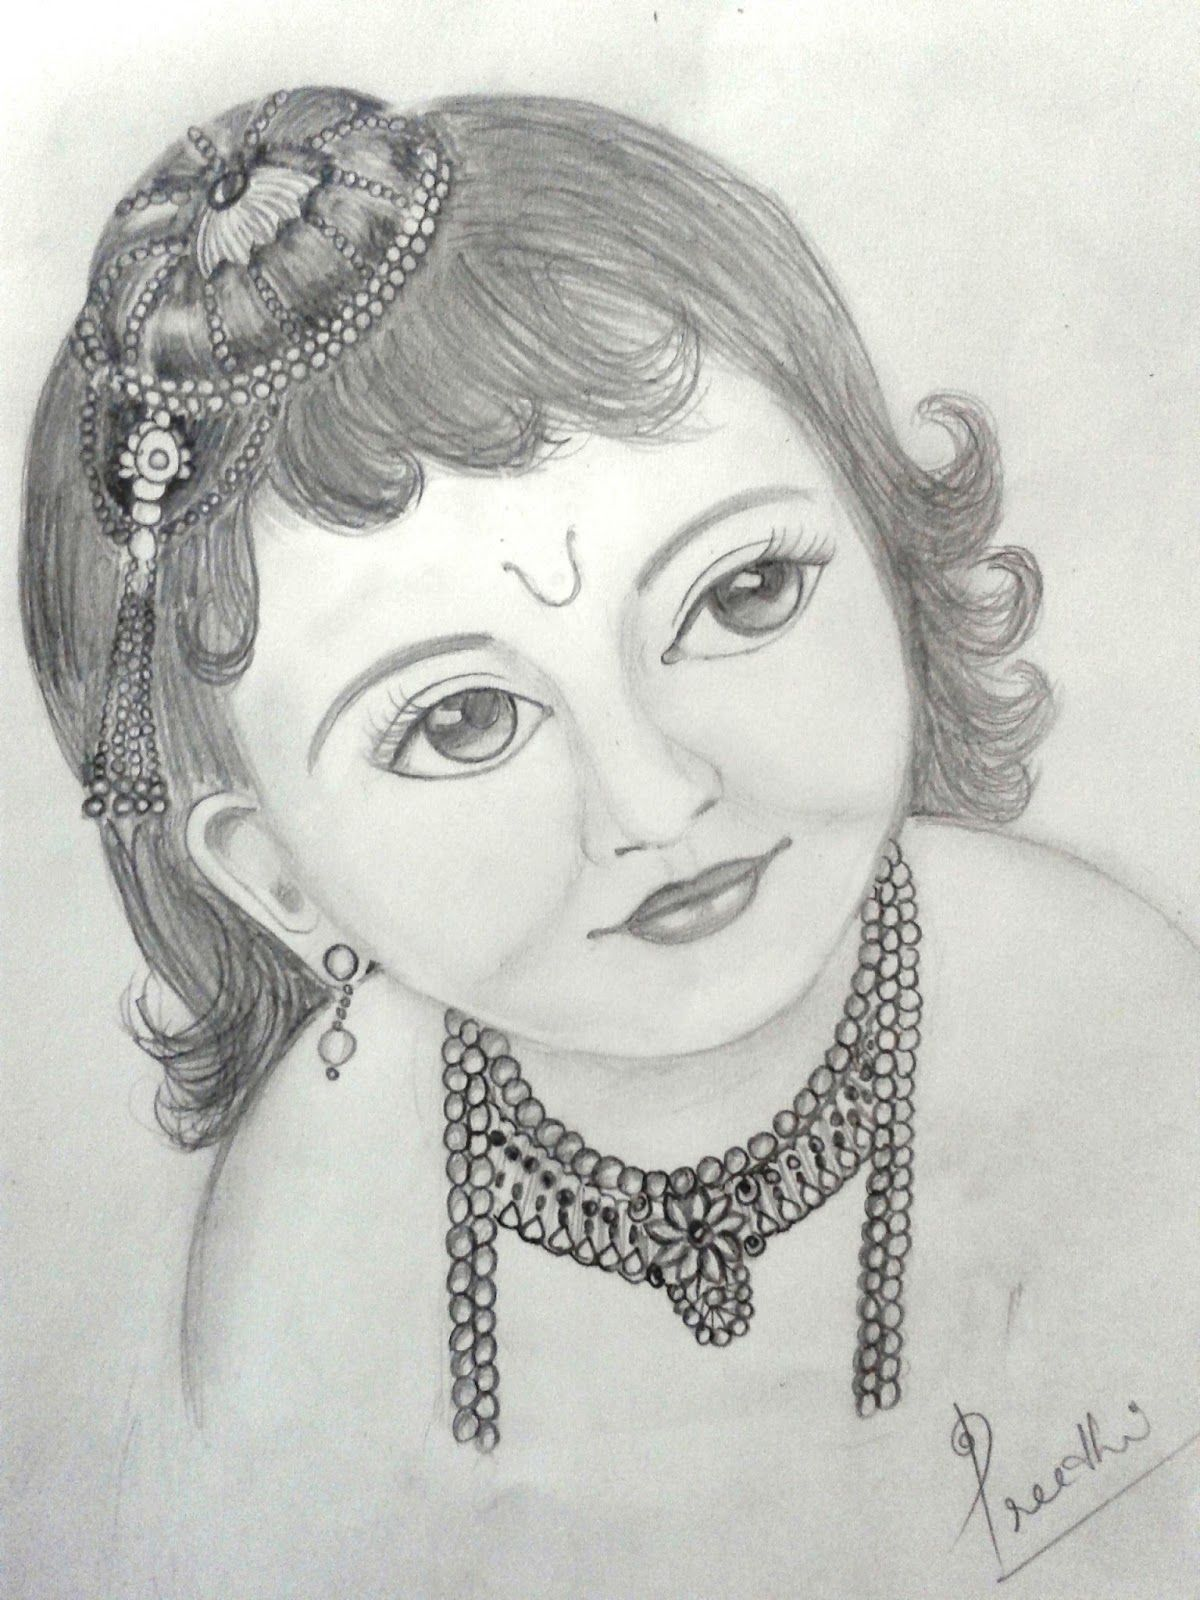 Preethi venugopala a pencil sketch of little krishna